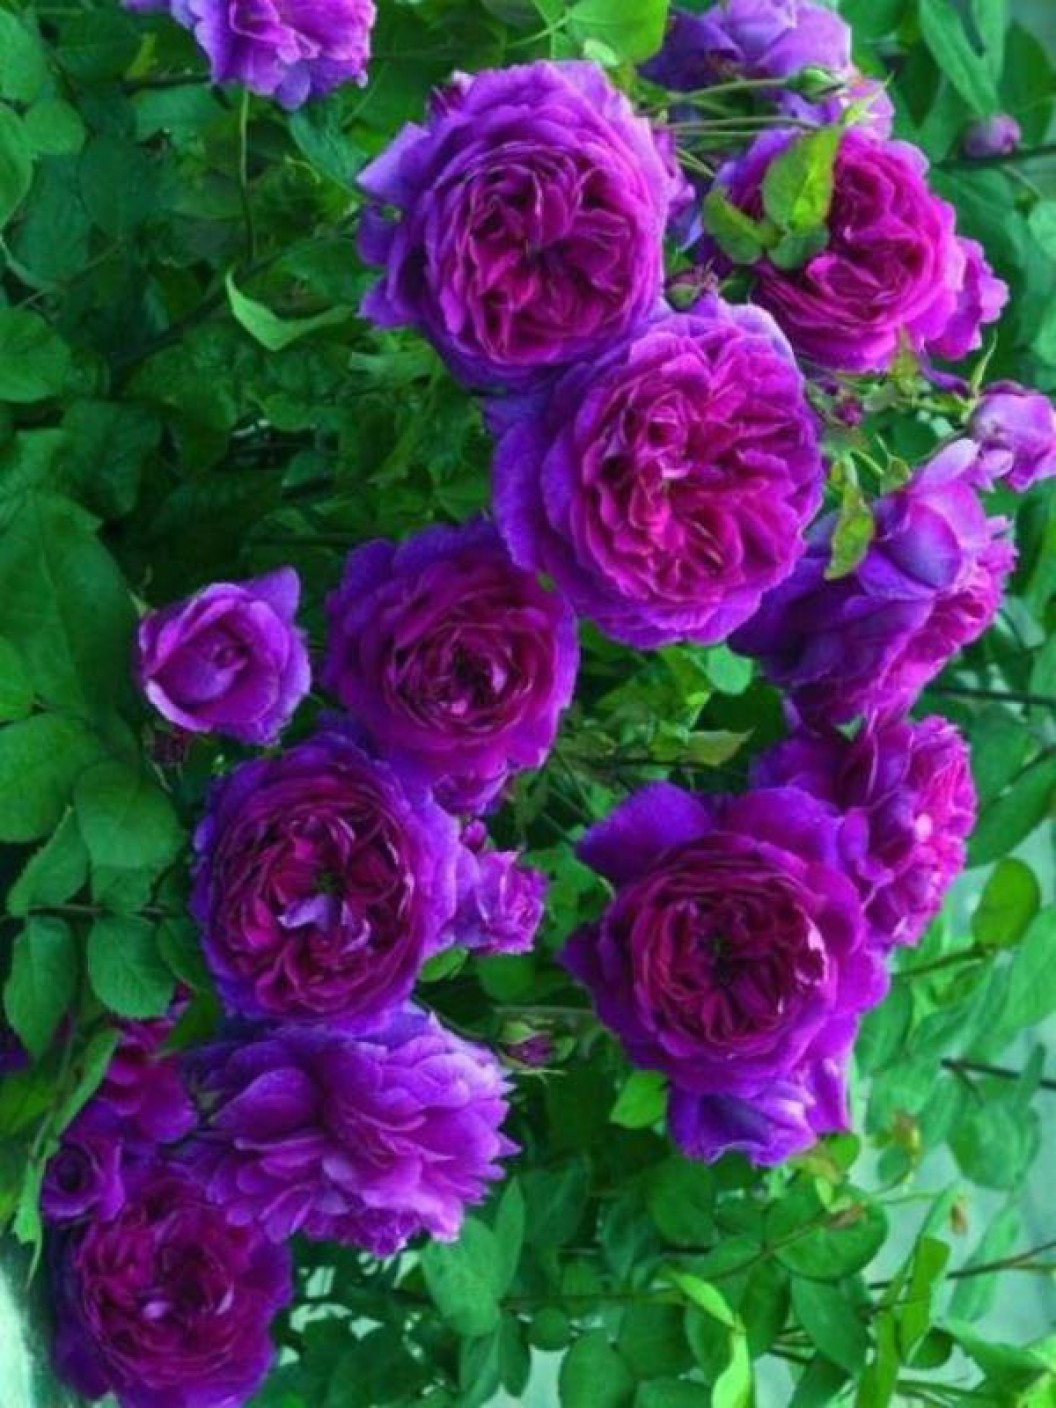 Shell Credit Card Online Services >> PRIYATHAMS Purple Climbing Rose Seed Price in India - Buy PRIYATHAMS Purple Climbing Rose Seed ...